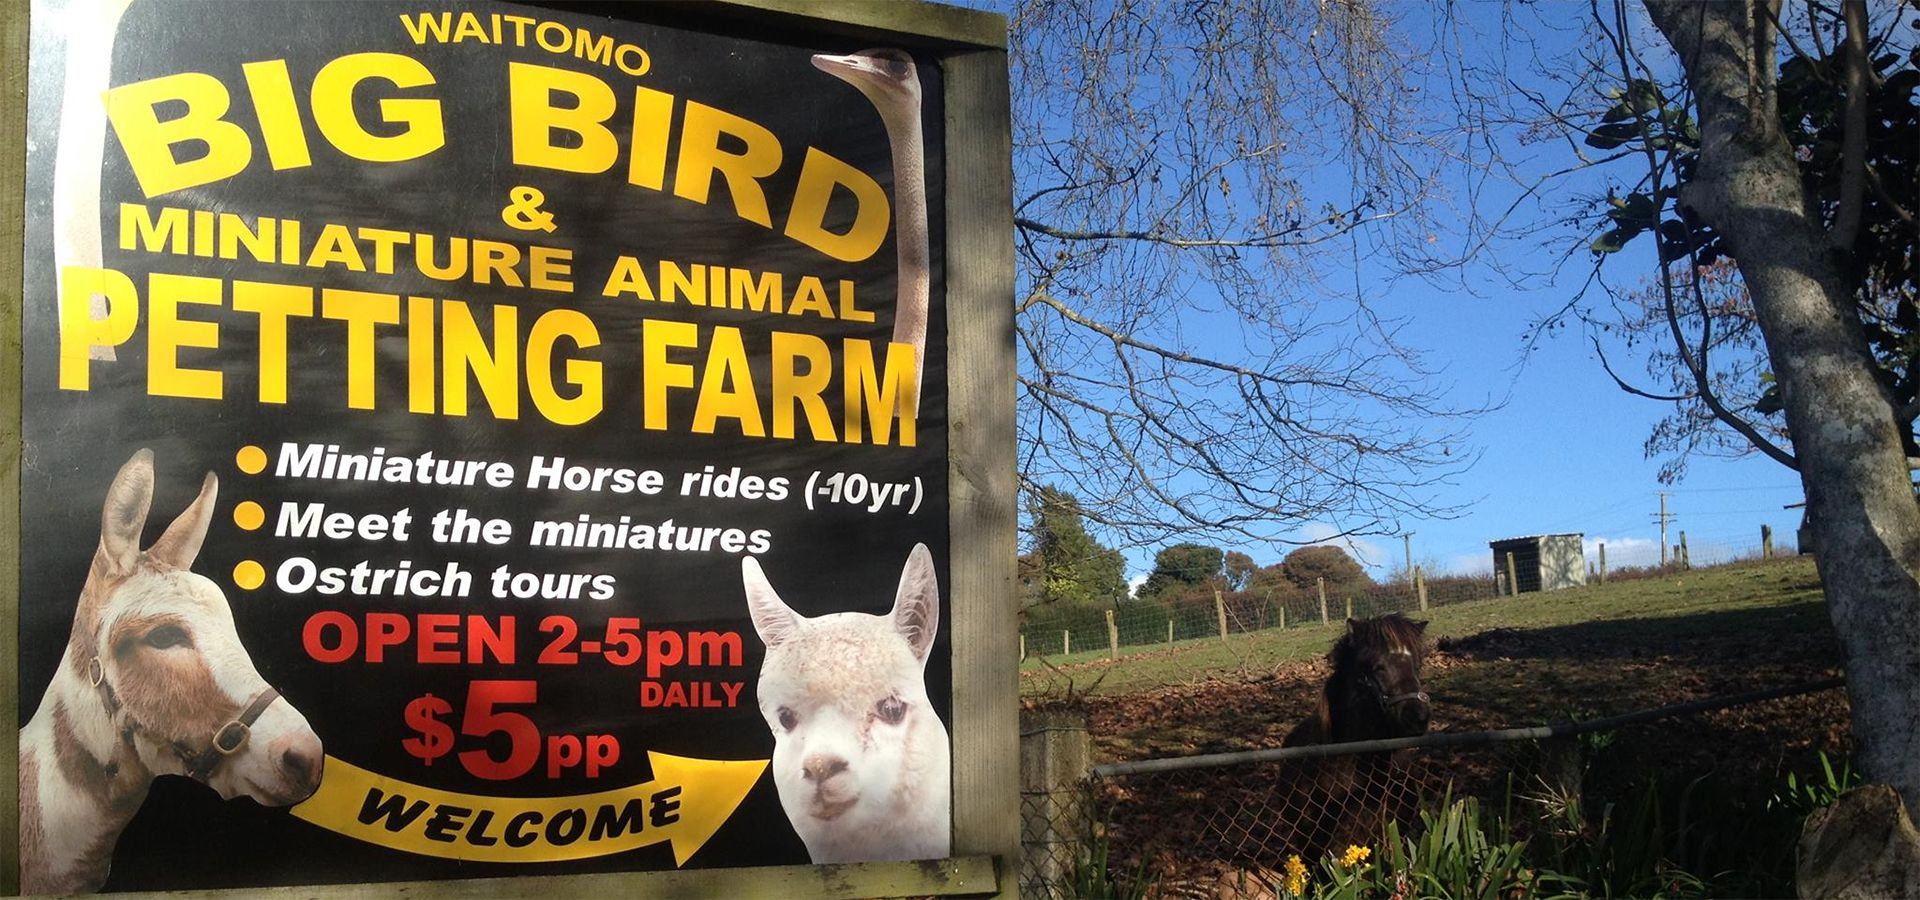 Waitomo Big Bird Bed and Breakfast and Petting Farm